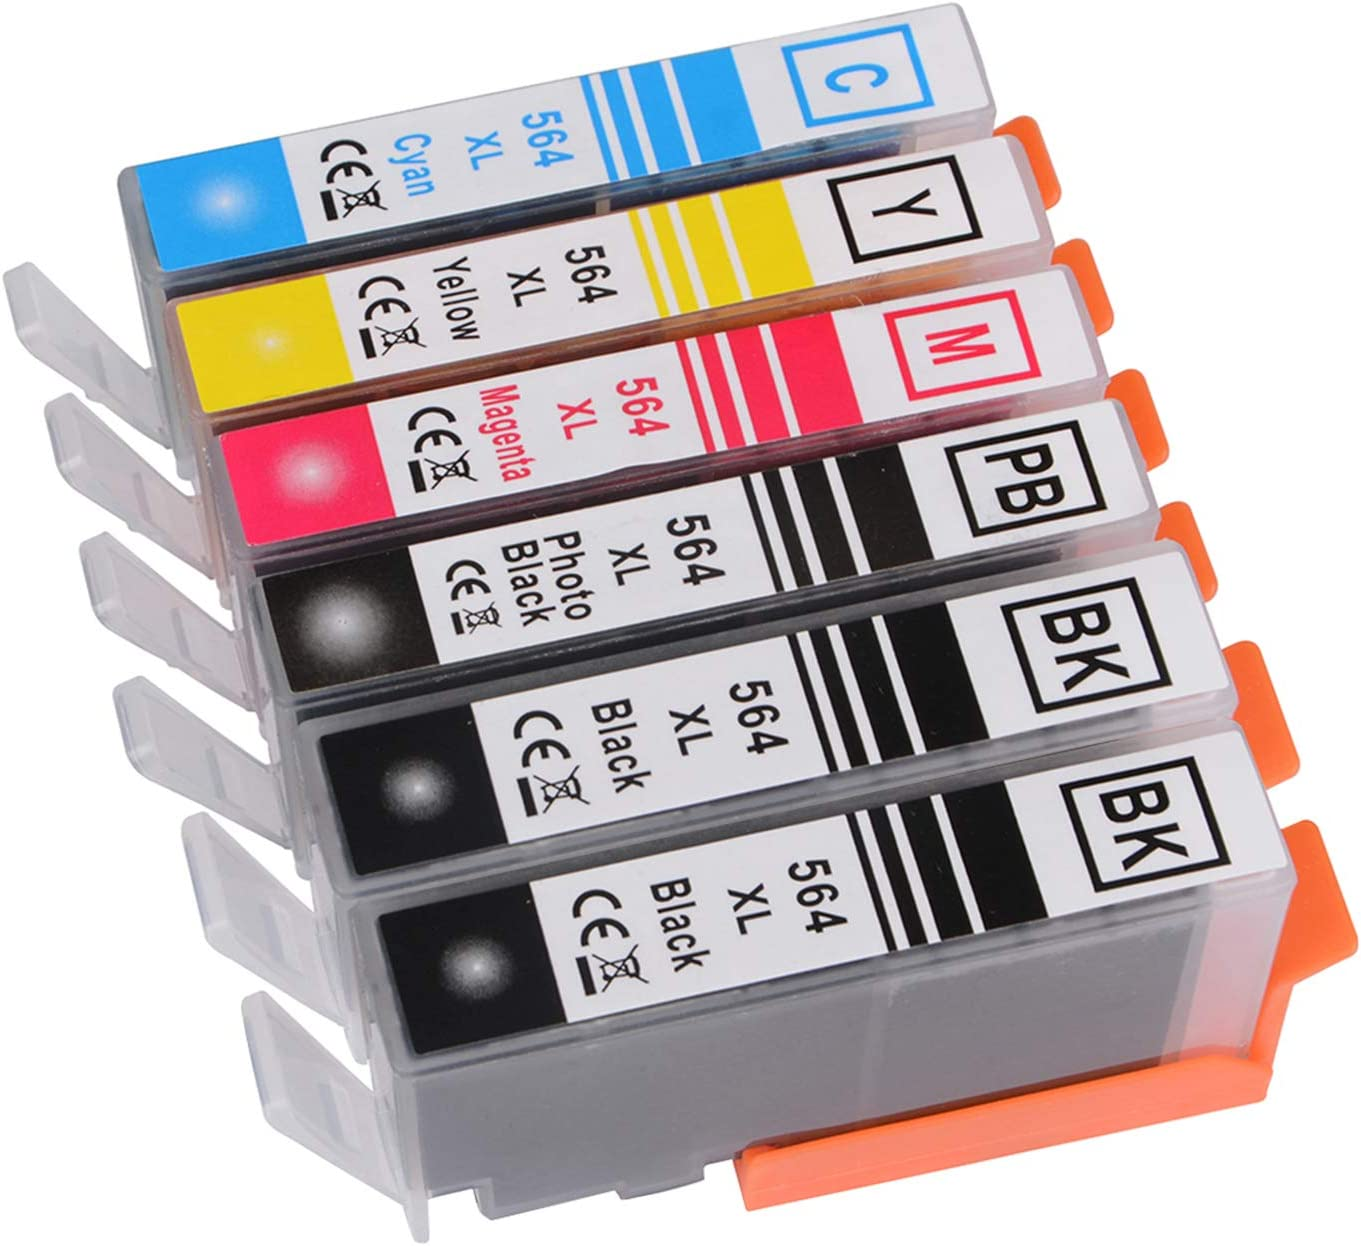 CHAILLY Compatible Ink Cartridges Replacement for HP 564 564XL for HP PhotoSmart 3520 4620 5510 5514 5520 c410a Printer (2Large Black, 1Photo Black,1 Cyan,1 Magenta, 1Yellow ) 6 Pack